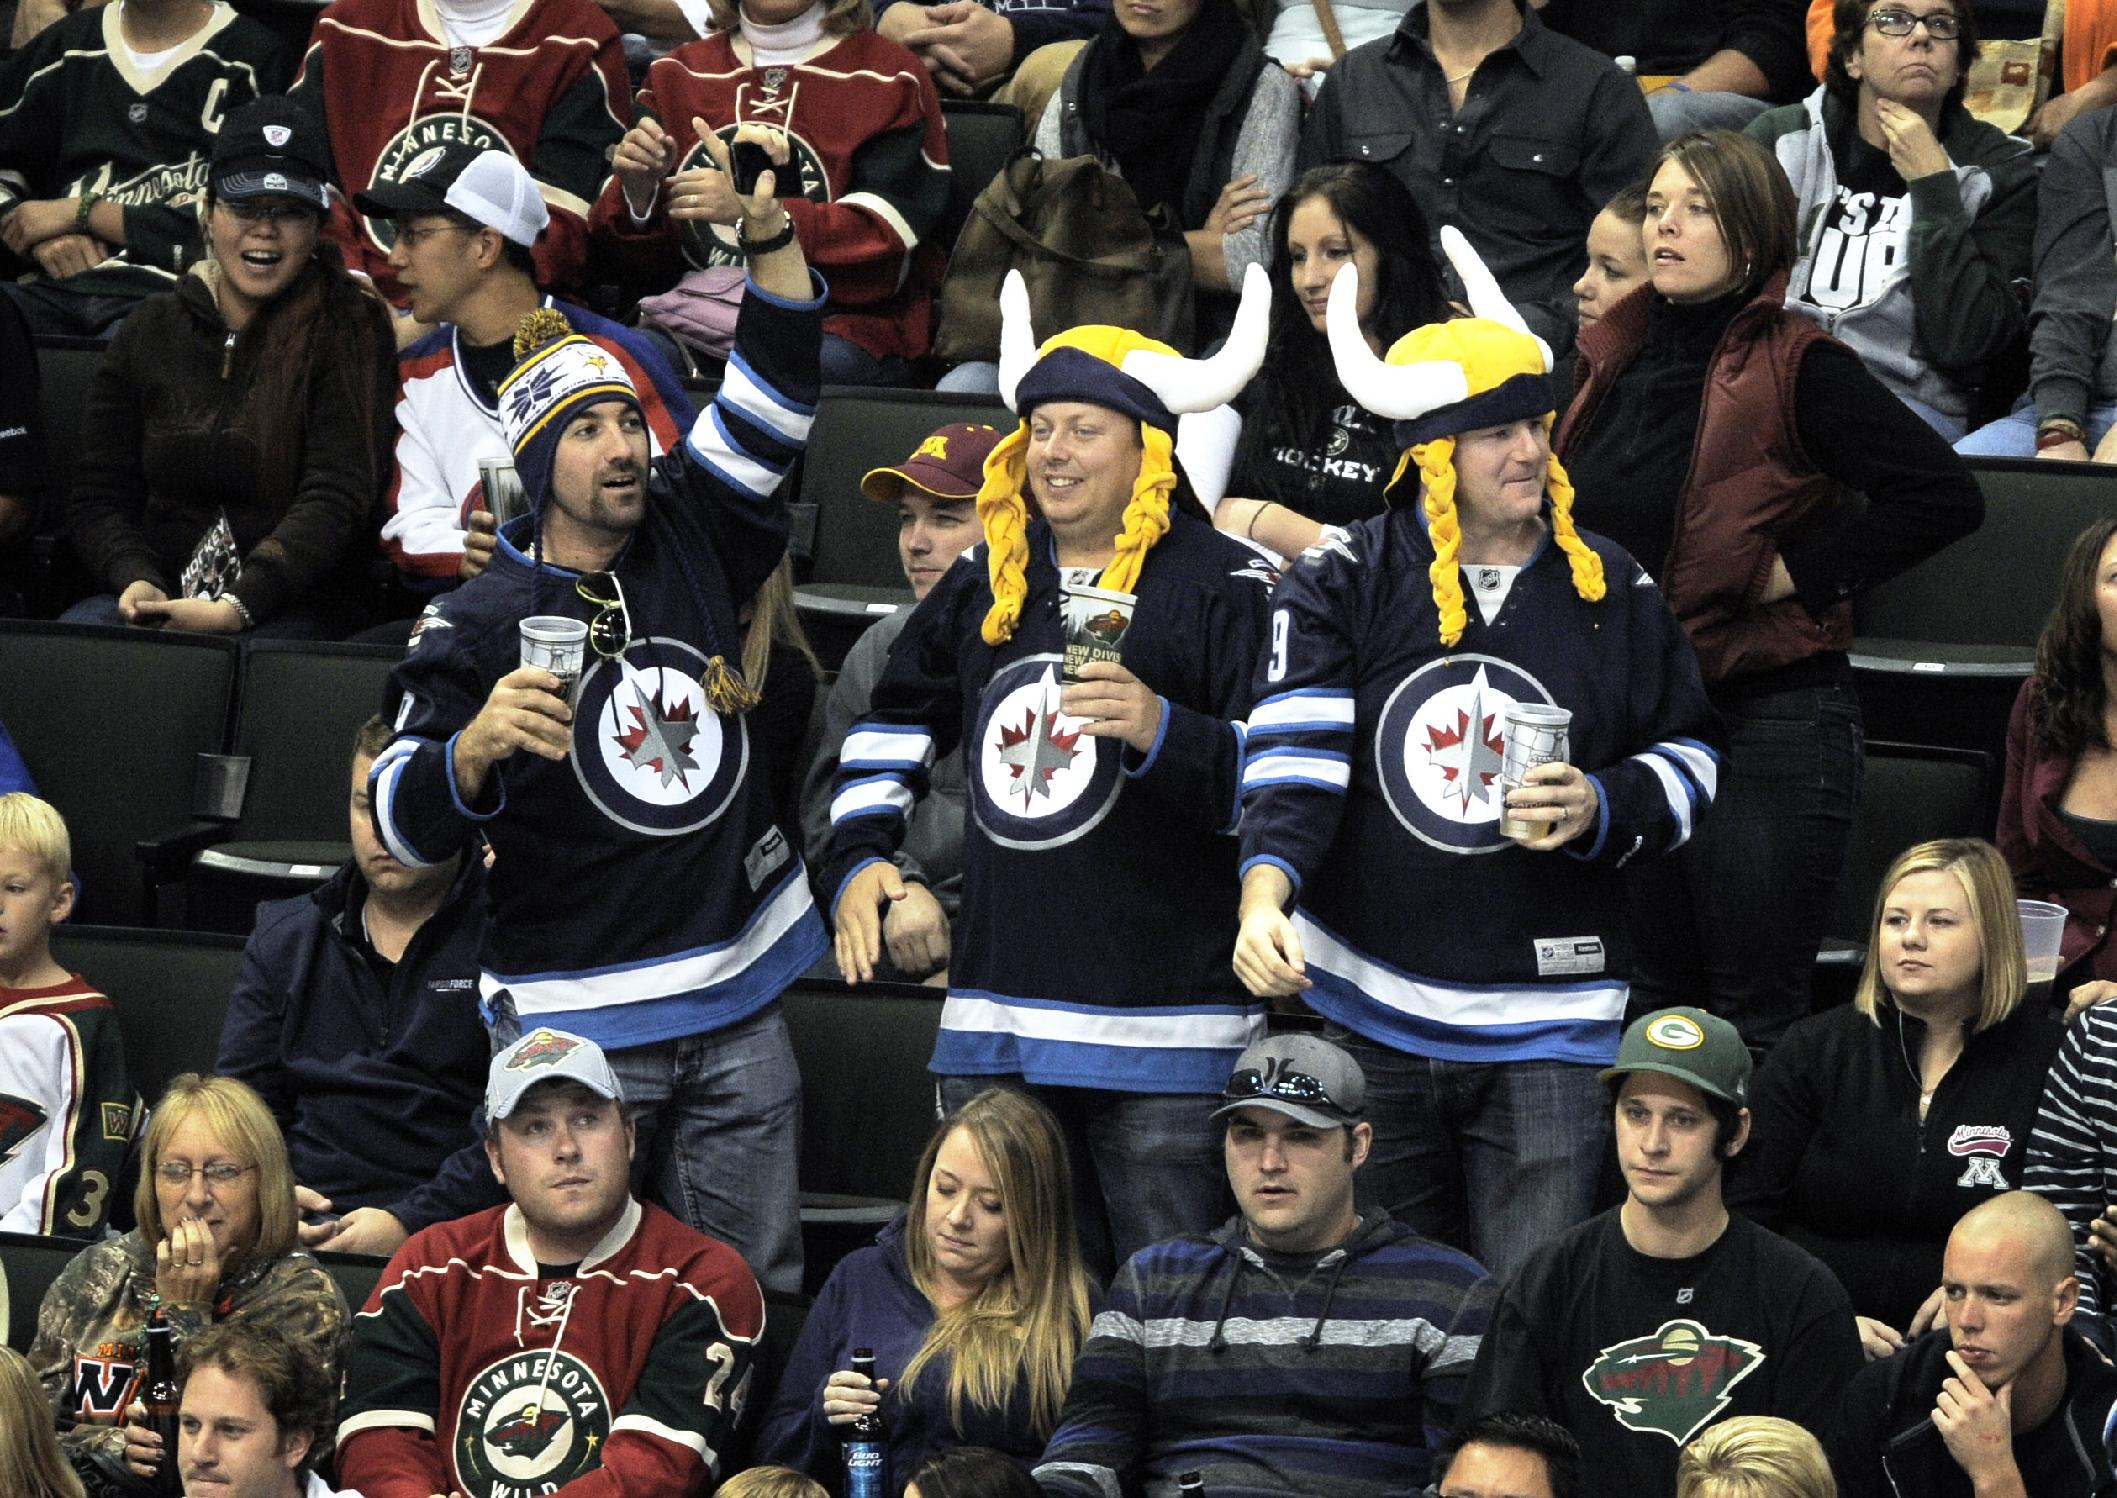 Winnipeg Jets fans wearing Minnesota Vikings headgear celebrate a goal by Jet's Jerome Samson in the second period of an NHL hockey game against the Minnesota Wild, Saturday, Sept. 21, 2013, in St. Paul, Minn. Minnesota won 4-3 in a shootout. The Minnesota Vikings are to play the Cleveland Browns on Sunday at Mall of America field in Minneapolis